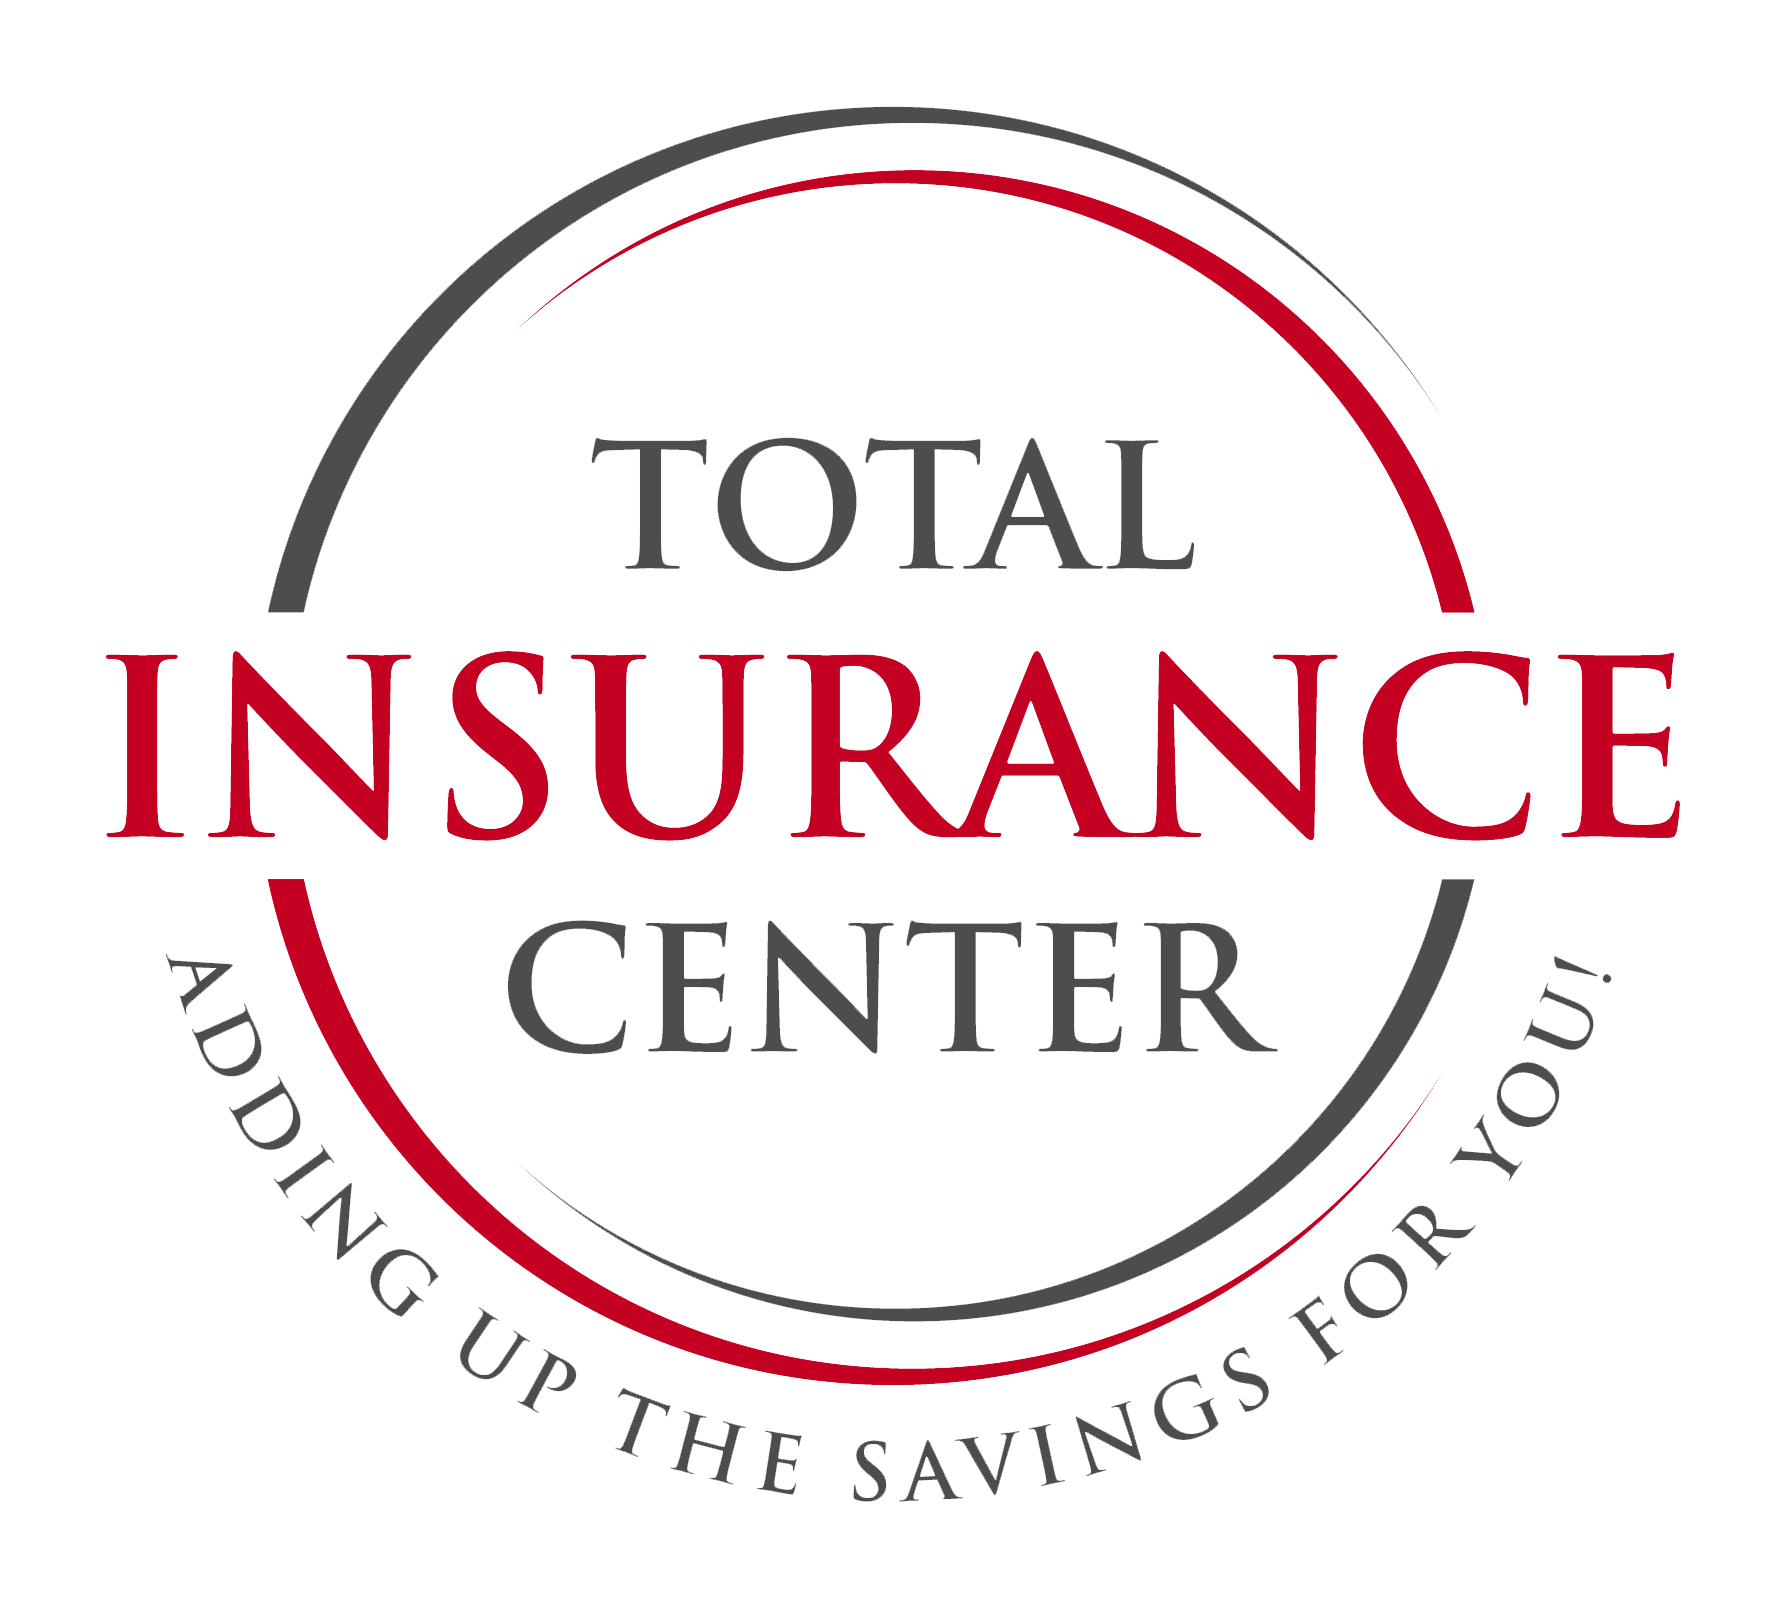 Total Insurance Agency